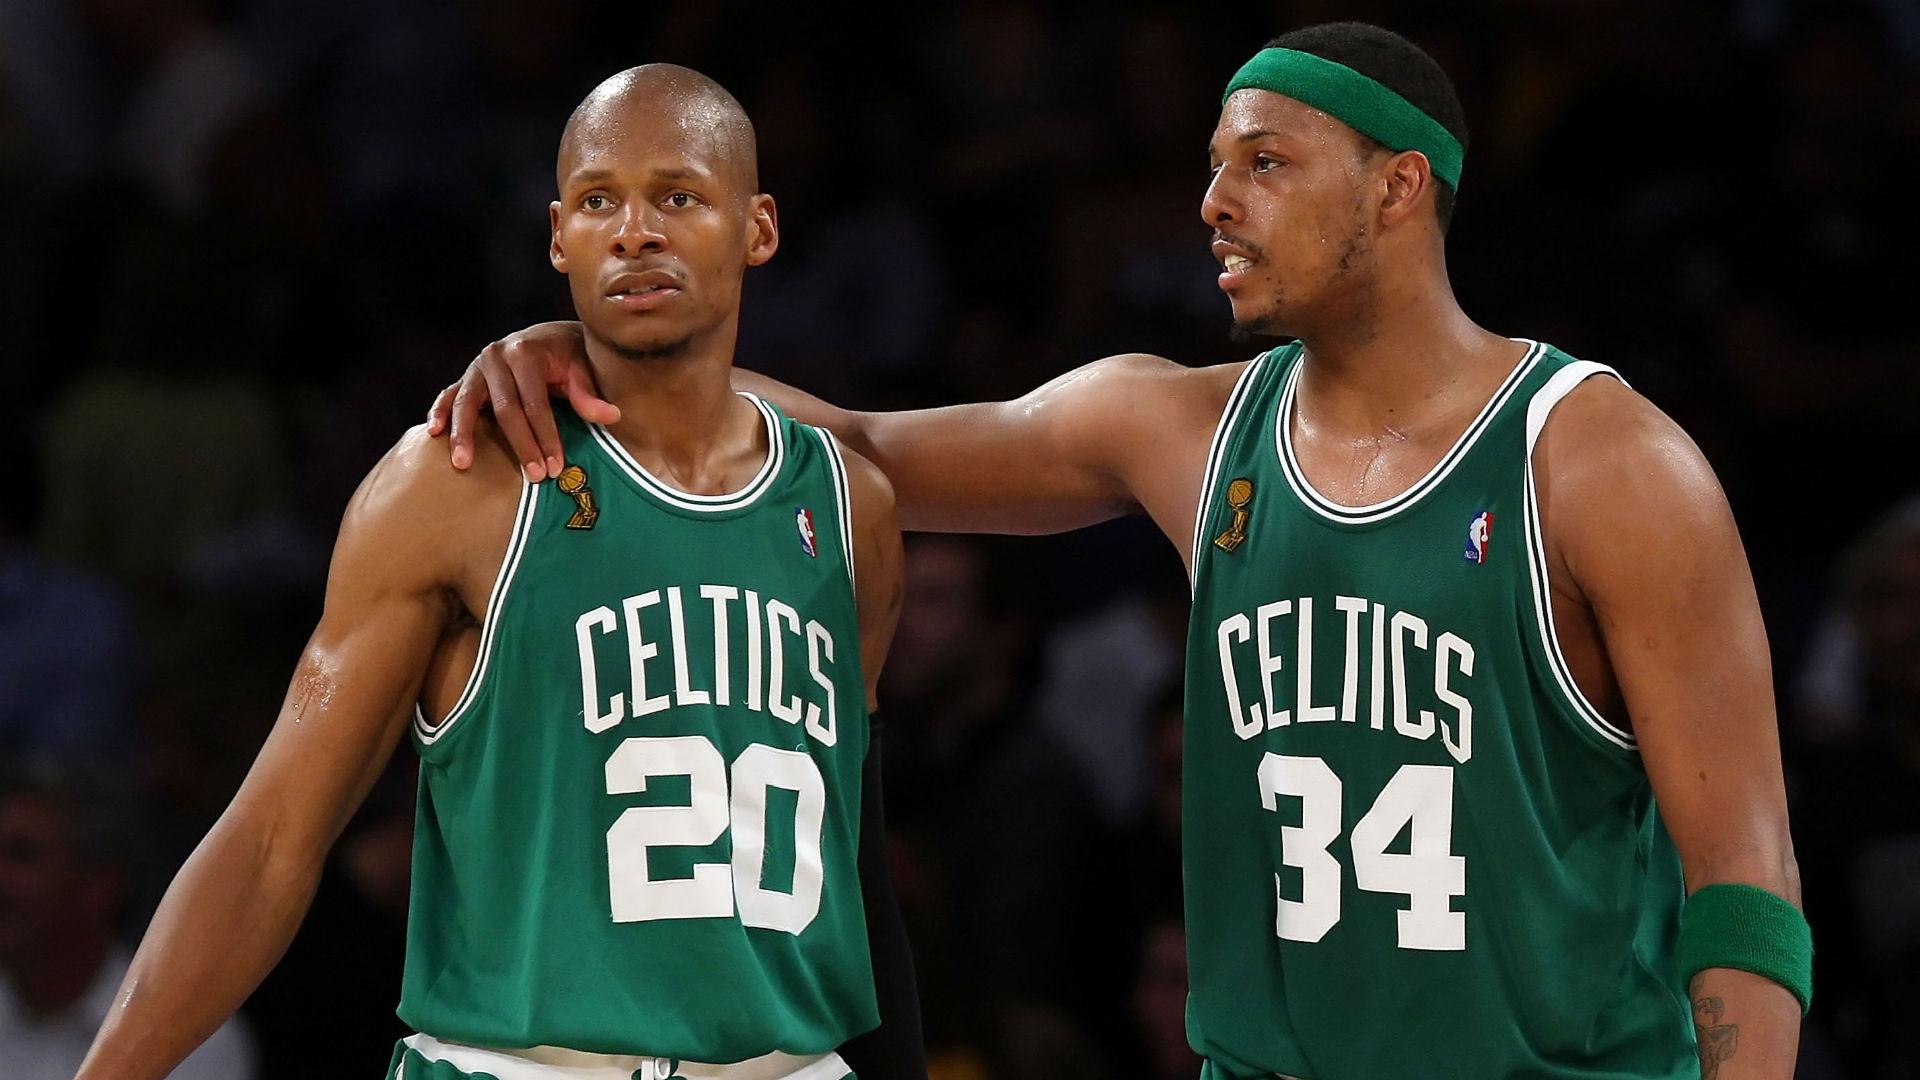 Paul Pierce says it's time to bury the hatchet with Ray Allen